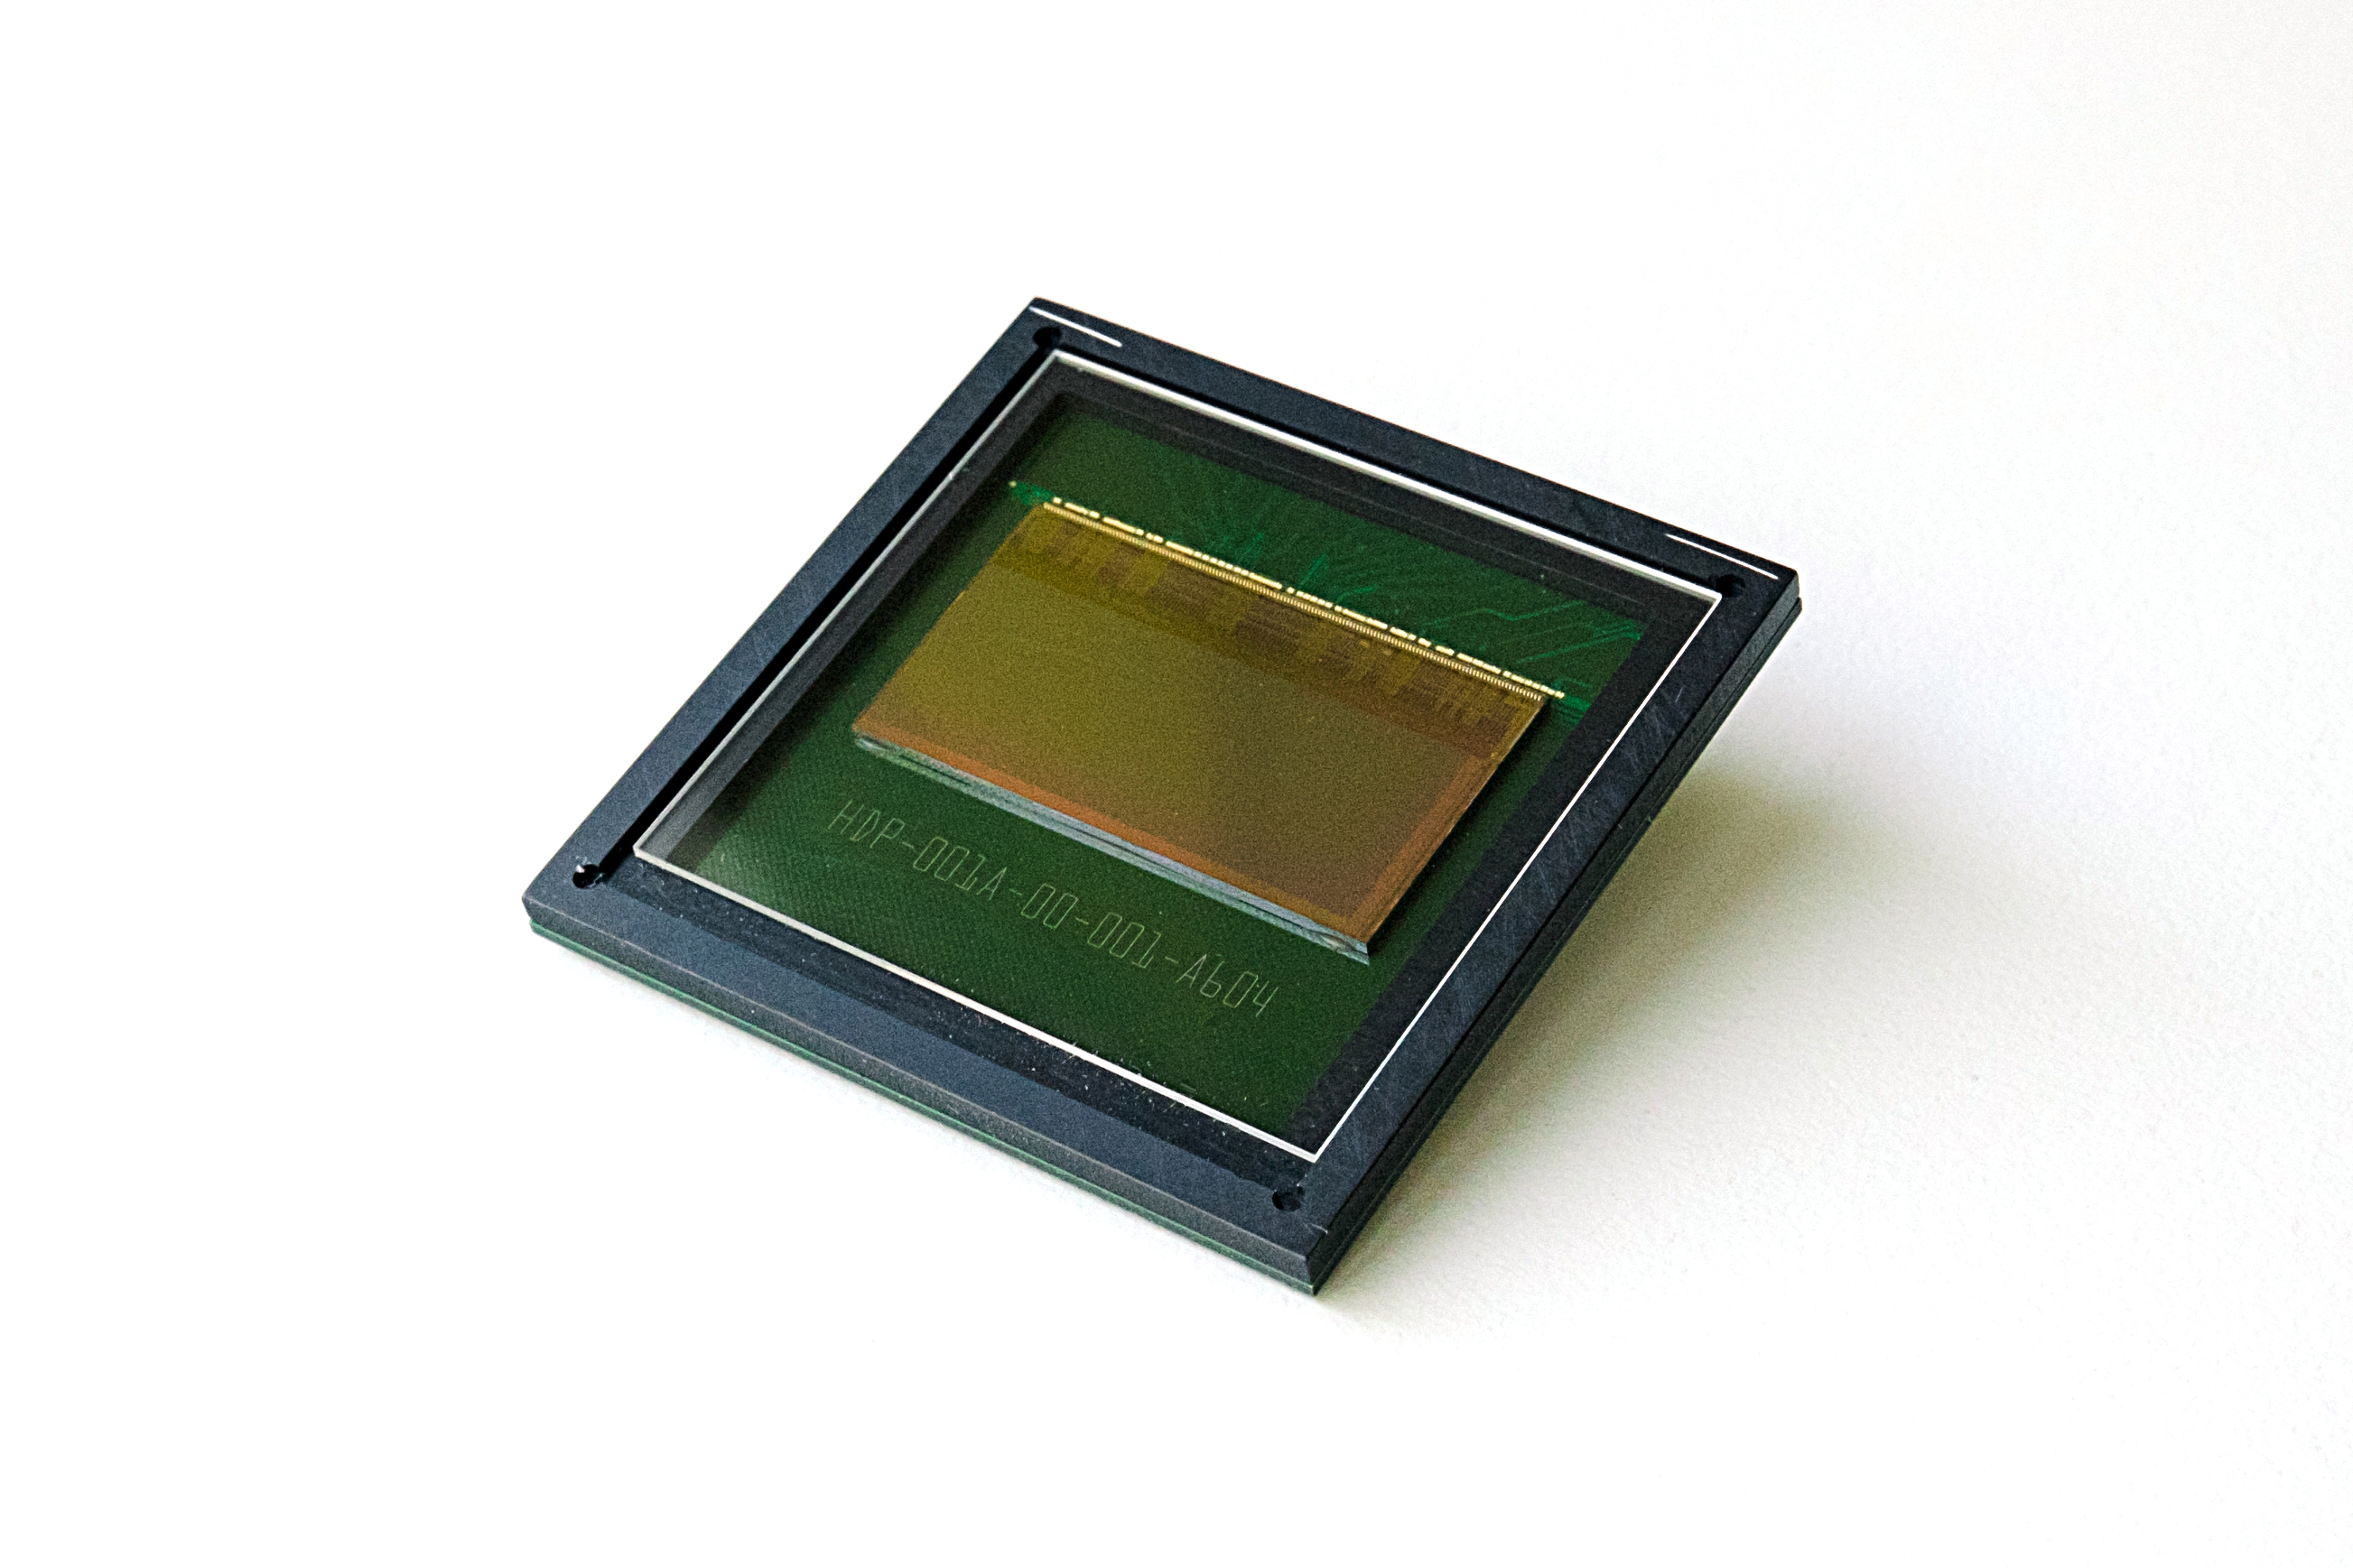 Framos and Pyxalis expand partnership on custom image sensors